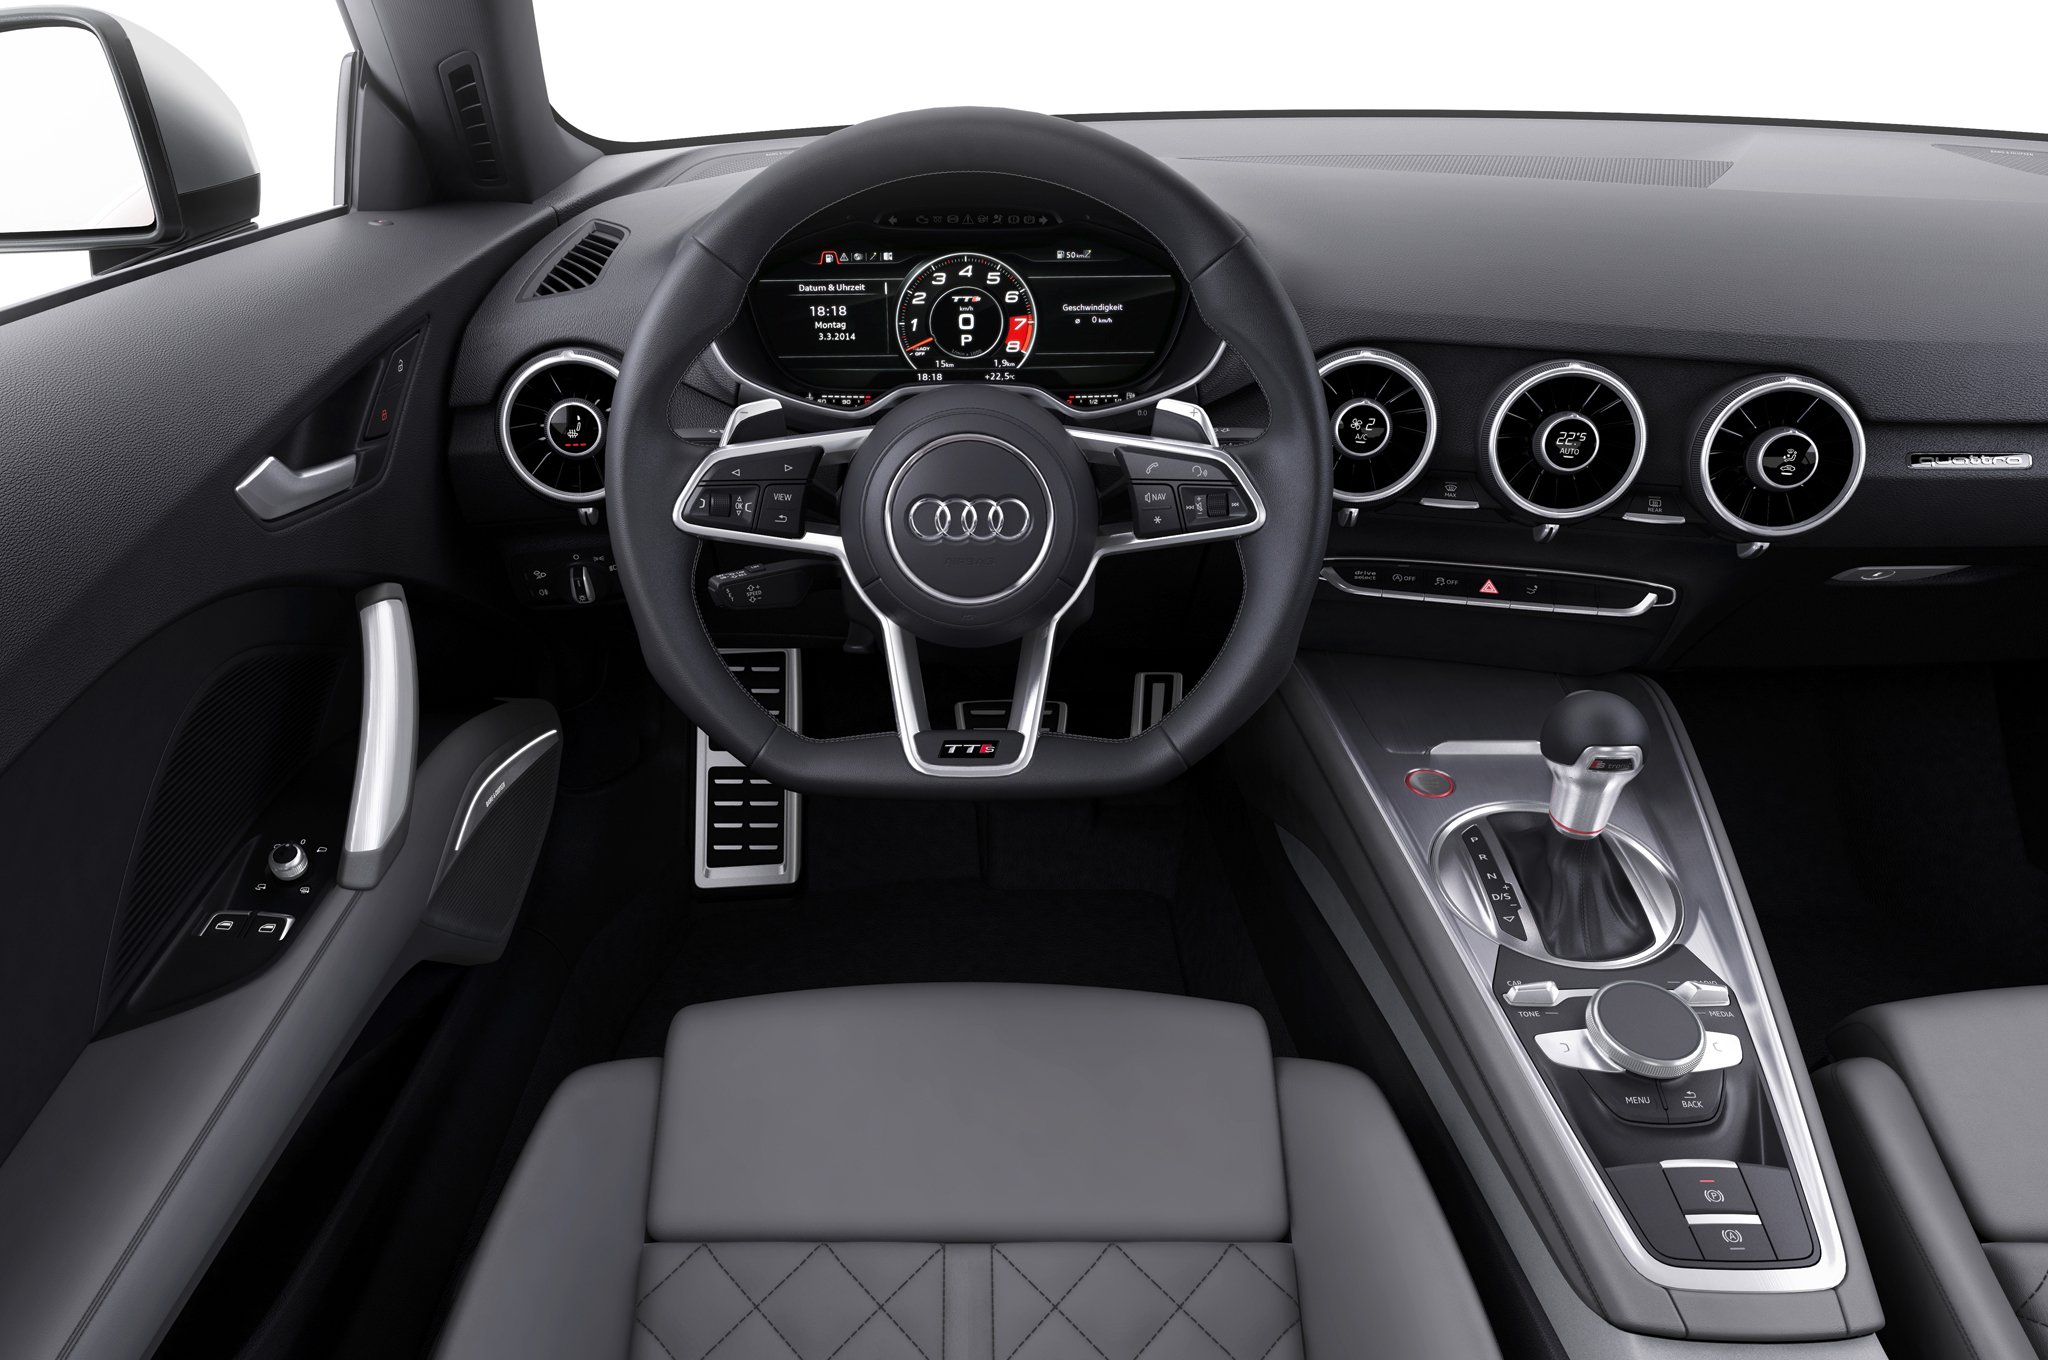 2016 Audi Tt Interior Cockpit And Dashboard (Photo 35 of 41)